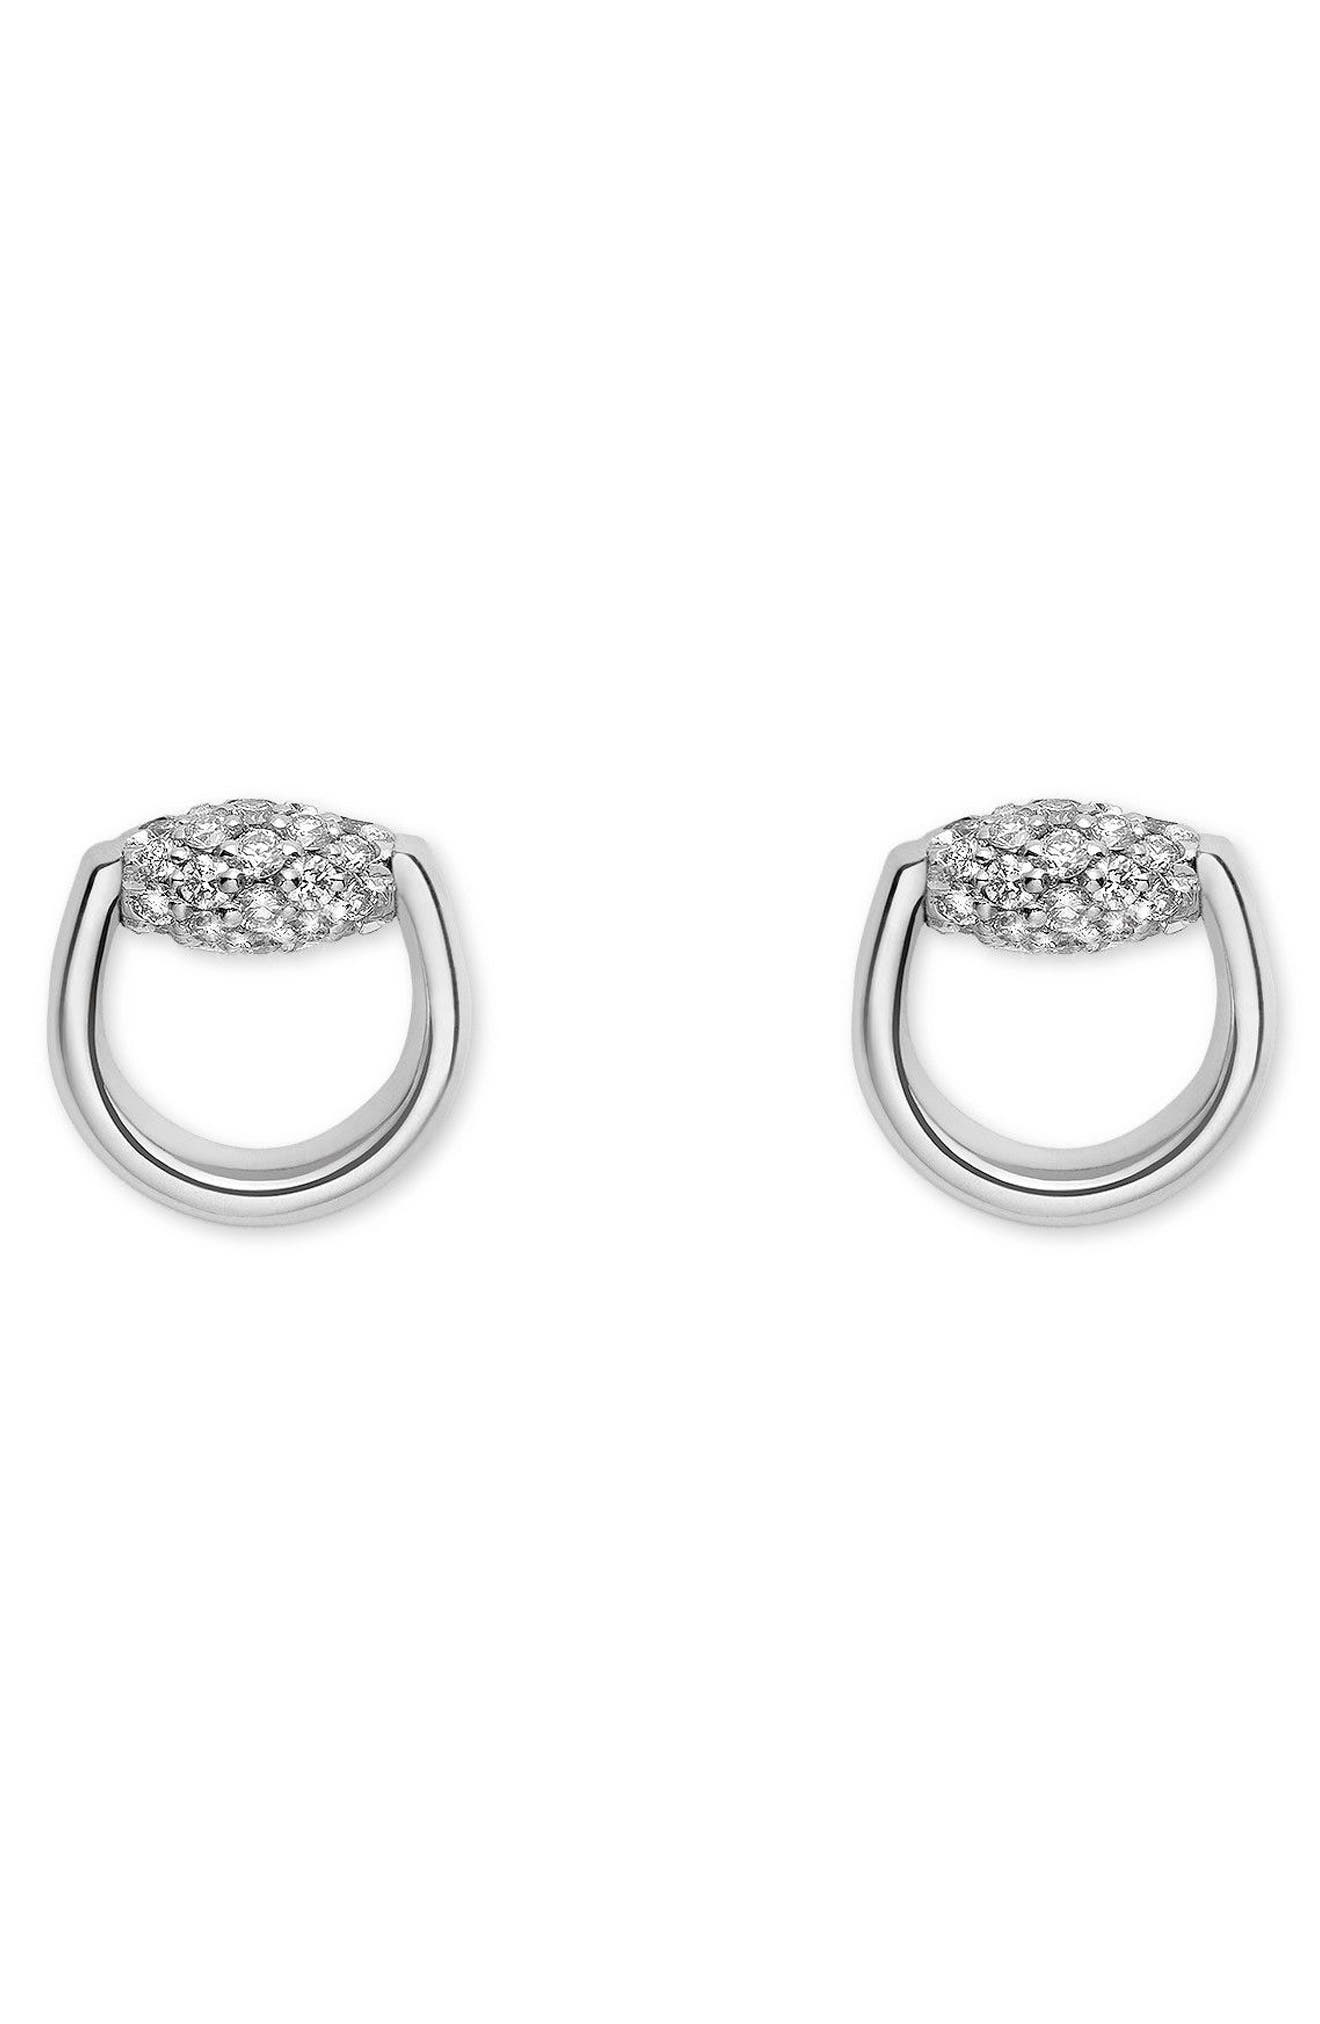 Horsebit Diamond Stud Earrings,                         Main,                         color, White Gold